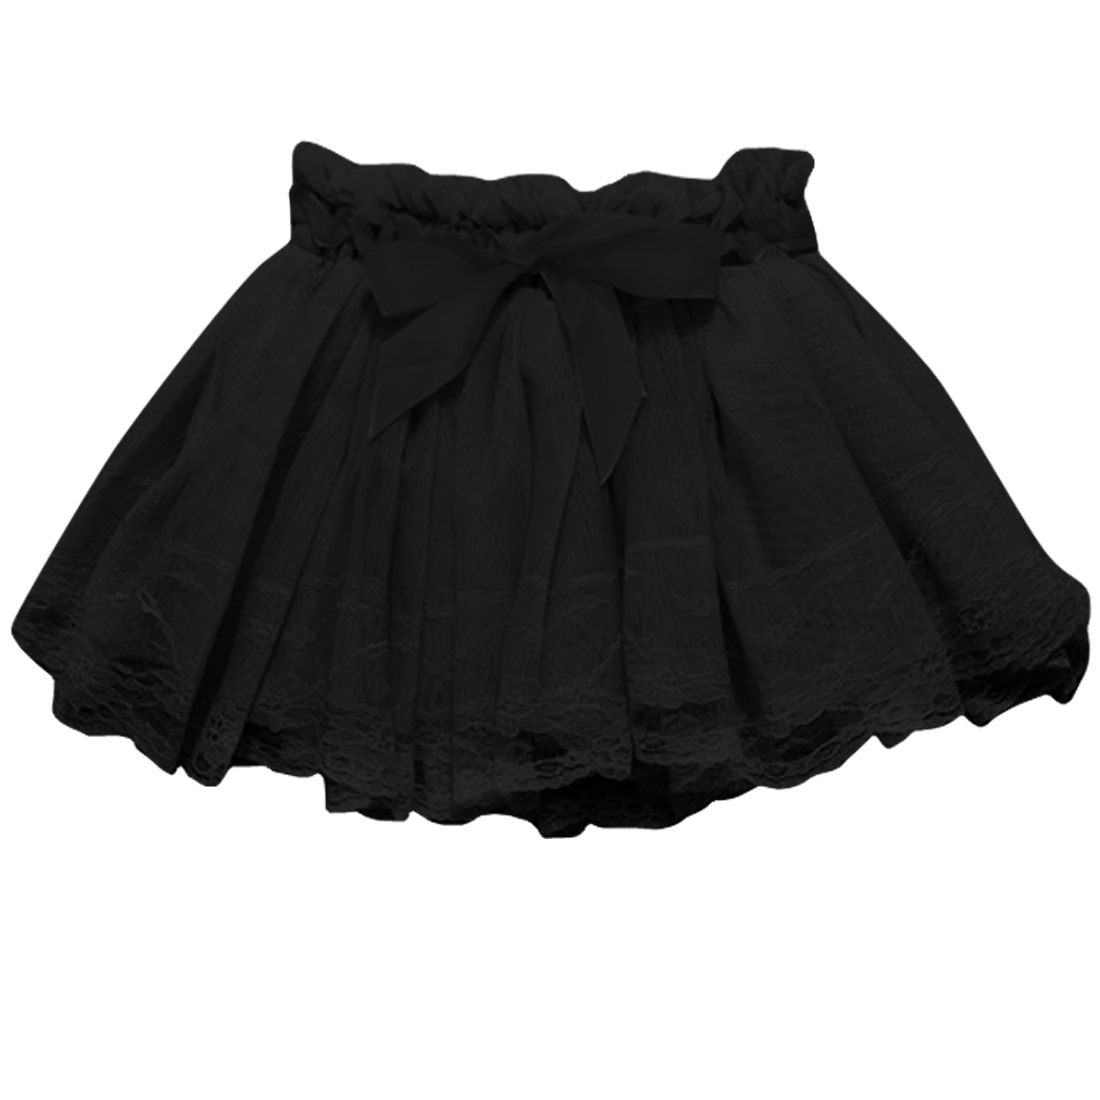 Baby Girls Elastic Waist Solid Color Elagant Kids Skirt 4 Black